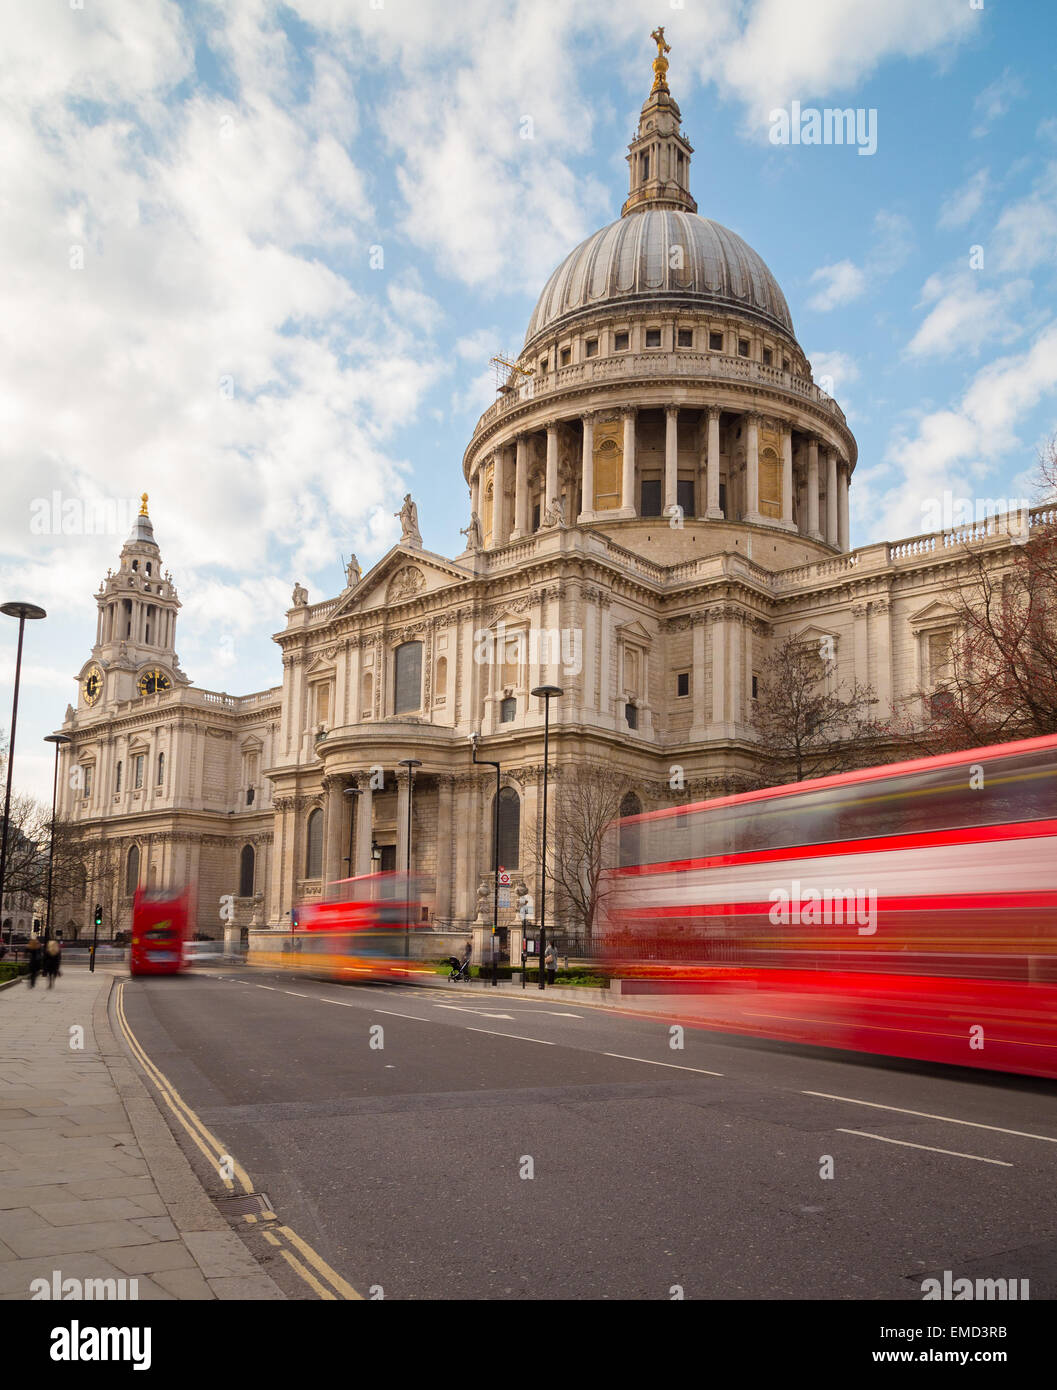 St Paul's Cathedral and Traffic during the day showing double decker buses on the road - Stock Image